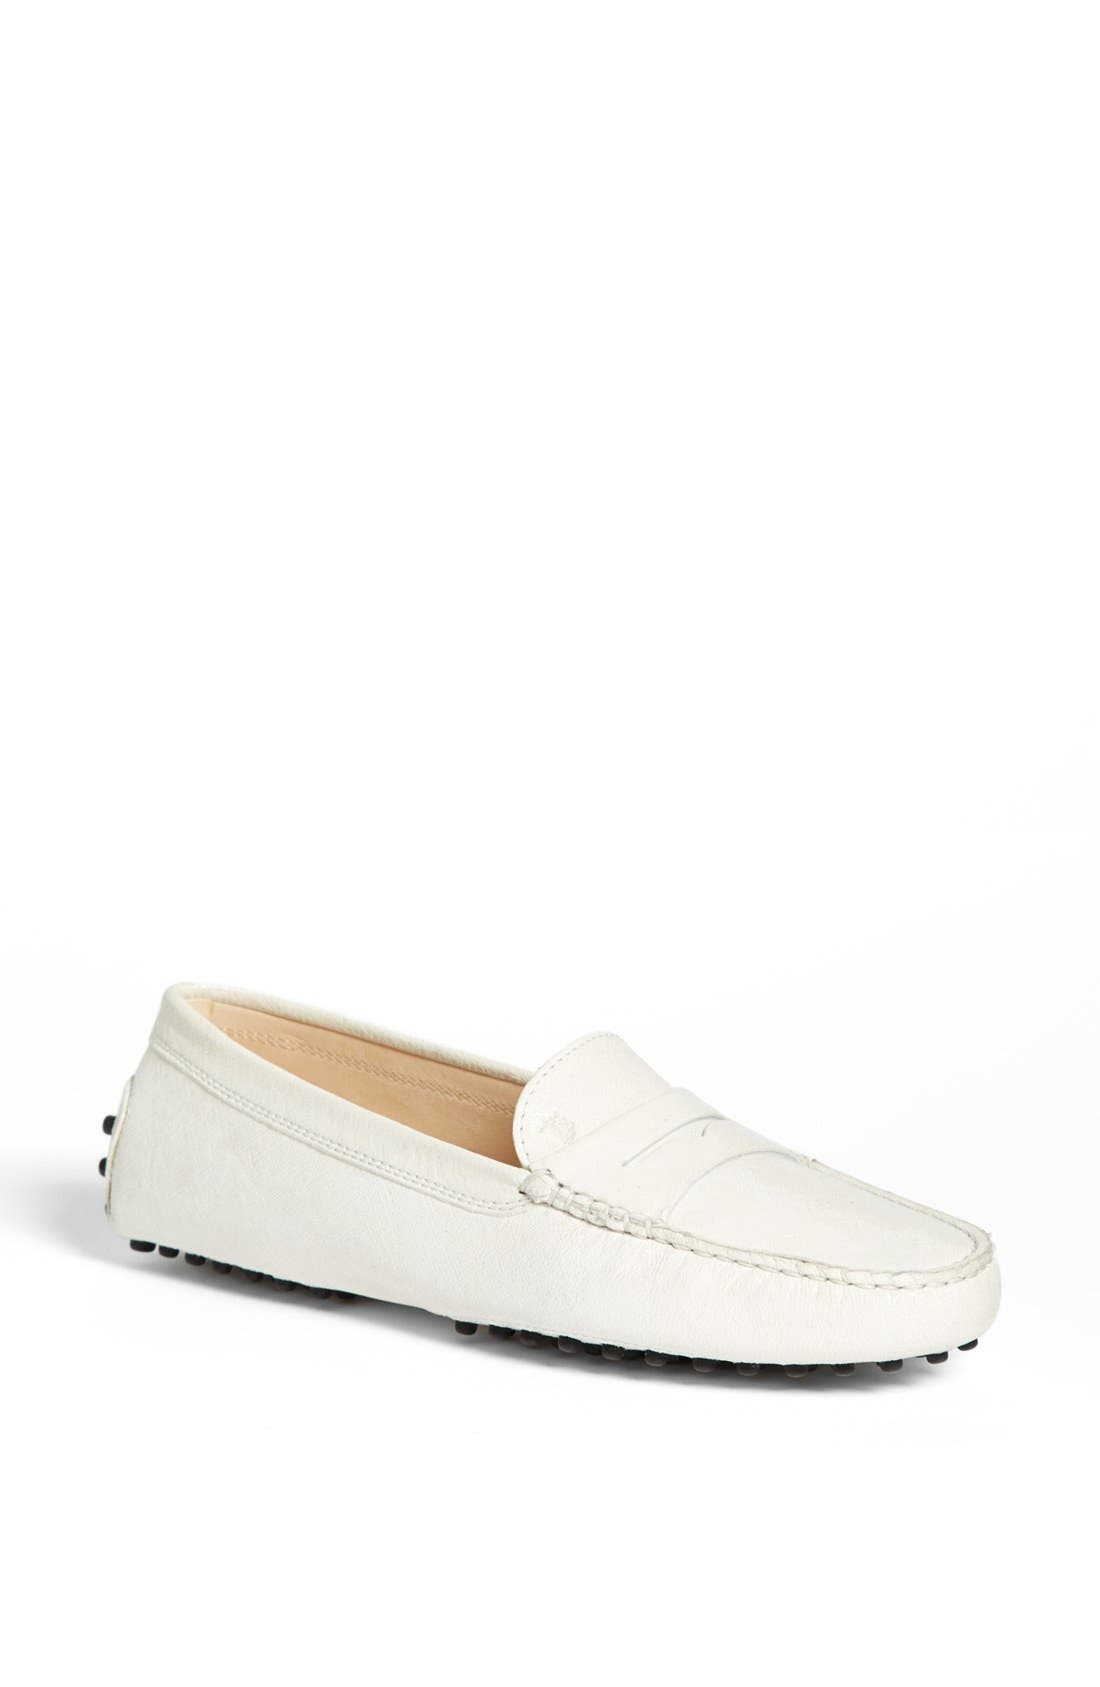 Alternate Image 1 Selected - Tod's 'Gommini' Leather Moccasin